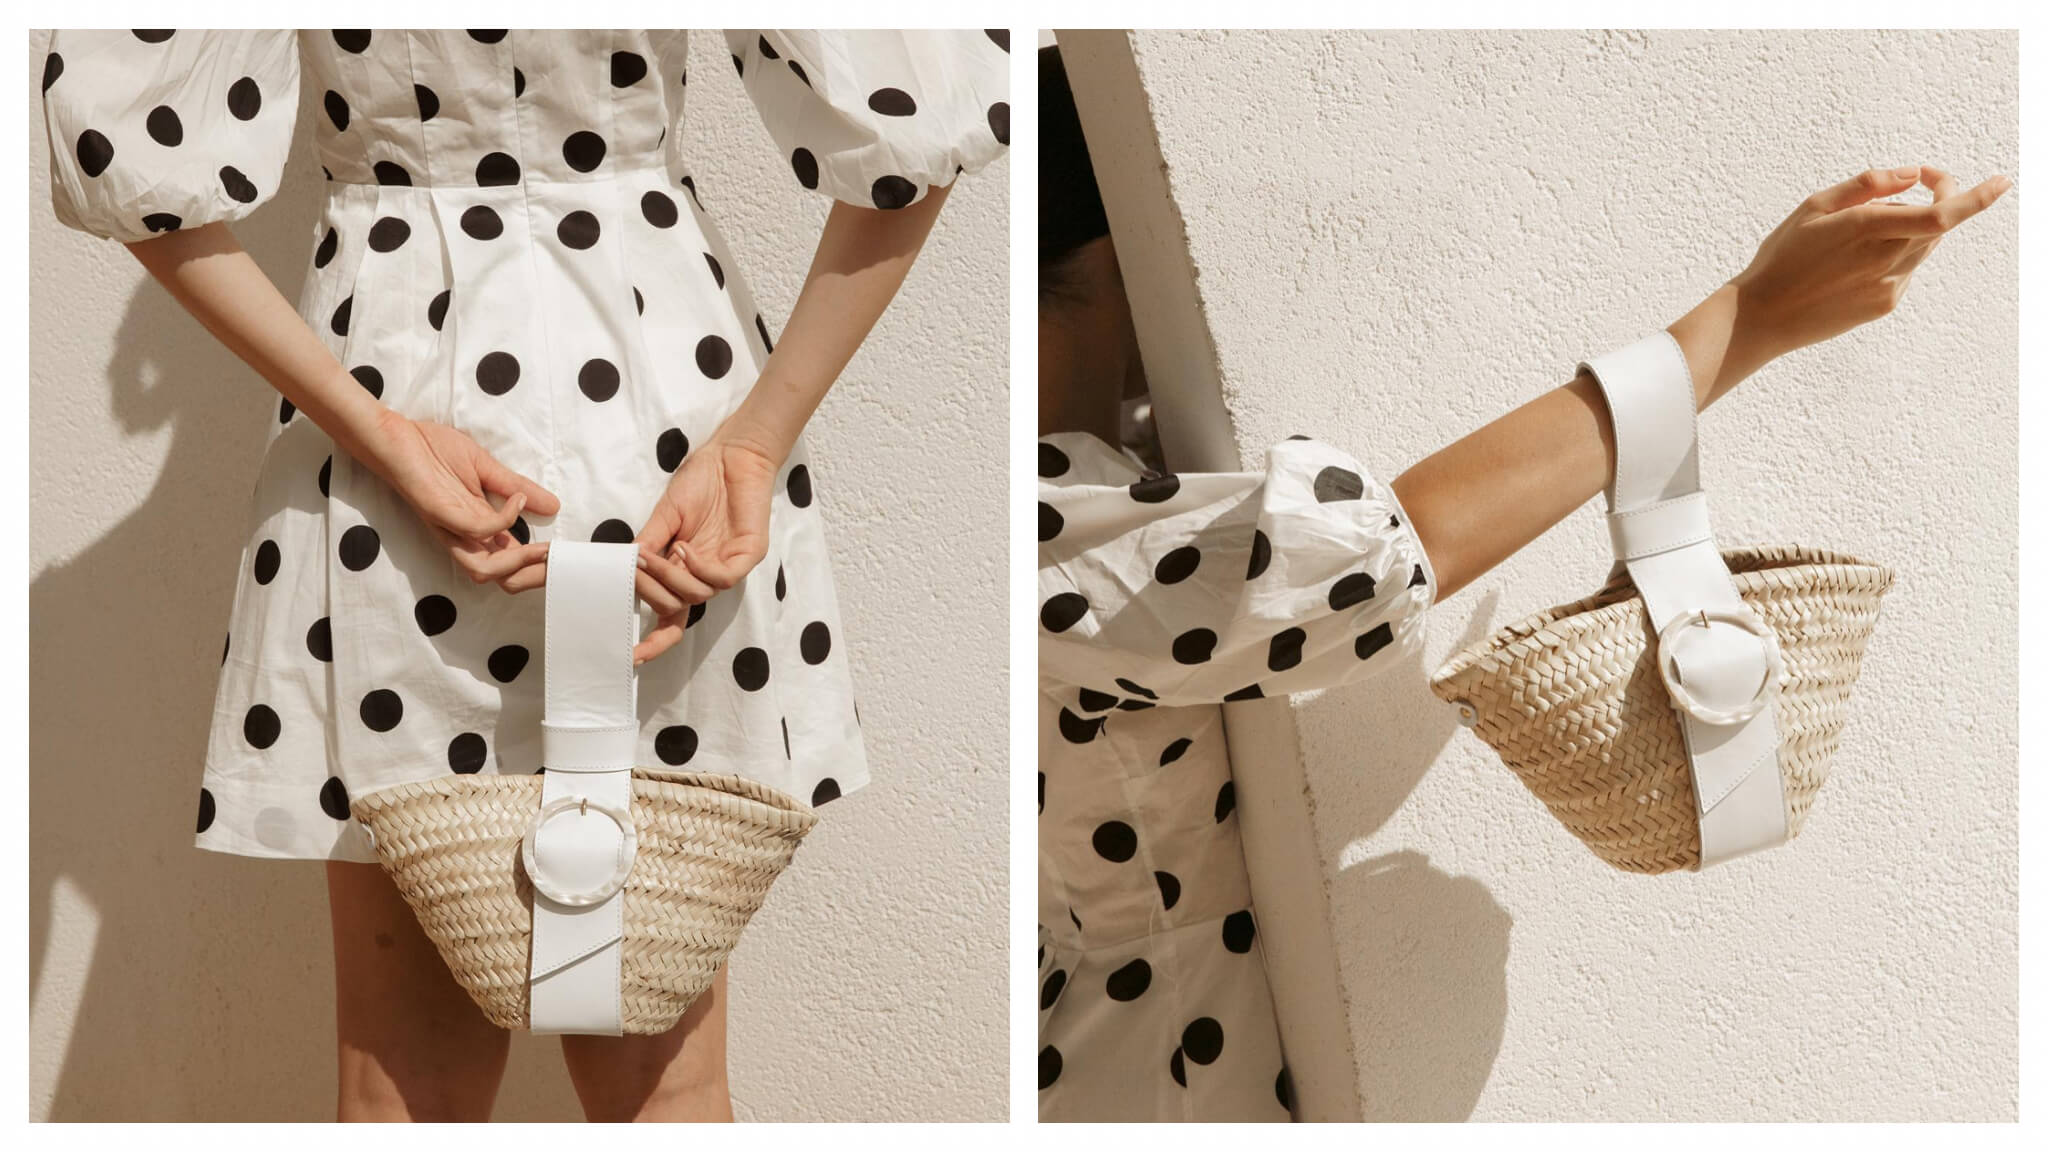 A woman in a polka-dot print dress models a small wicker handbag with a thick white strap from the brand Il était un fil